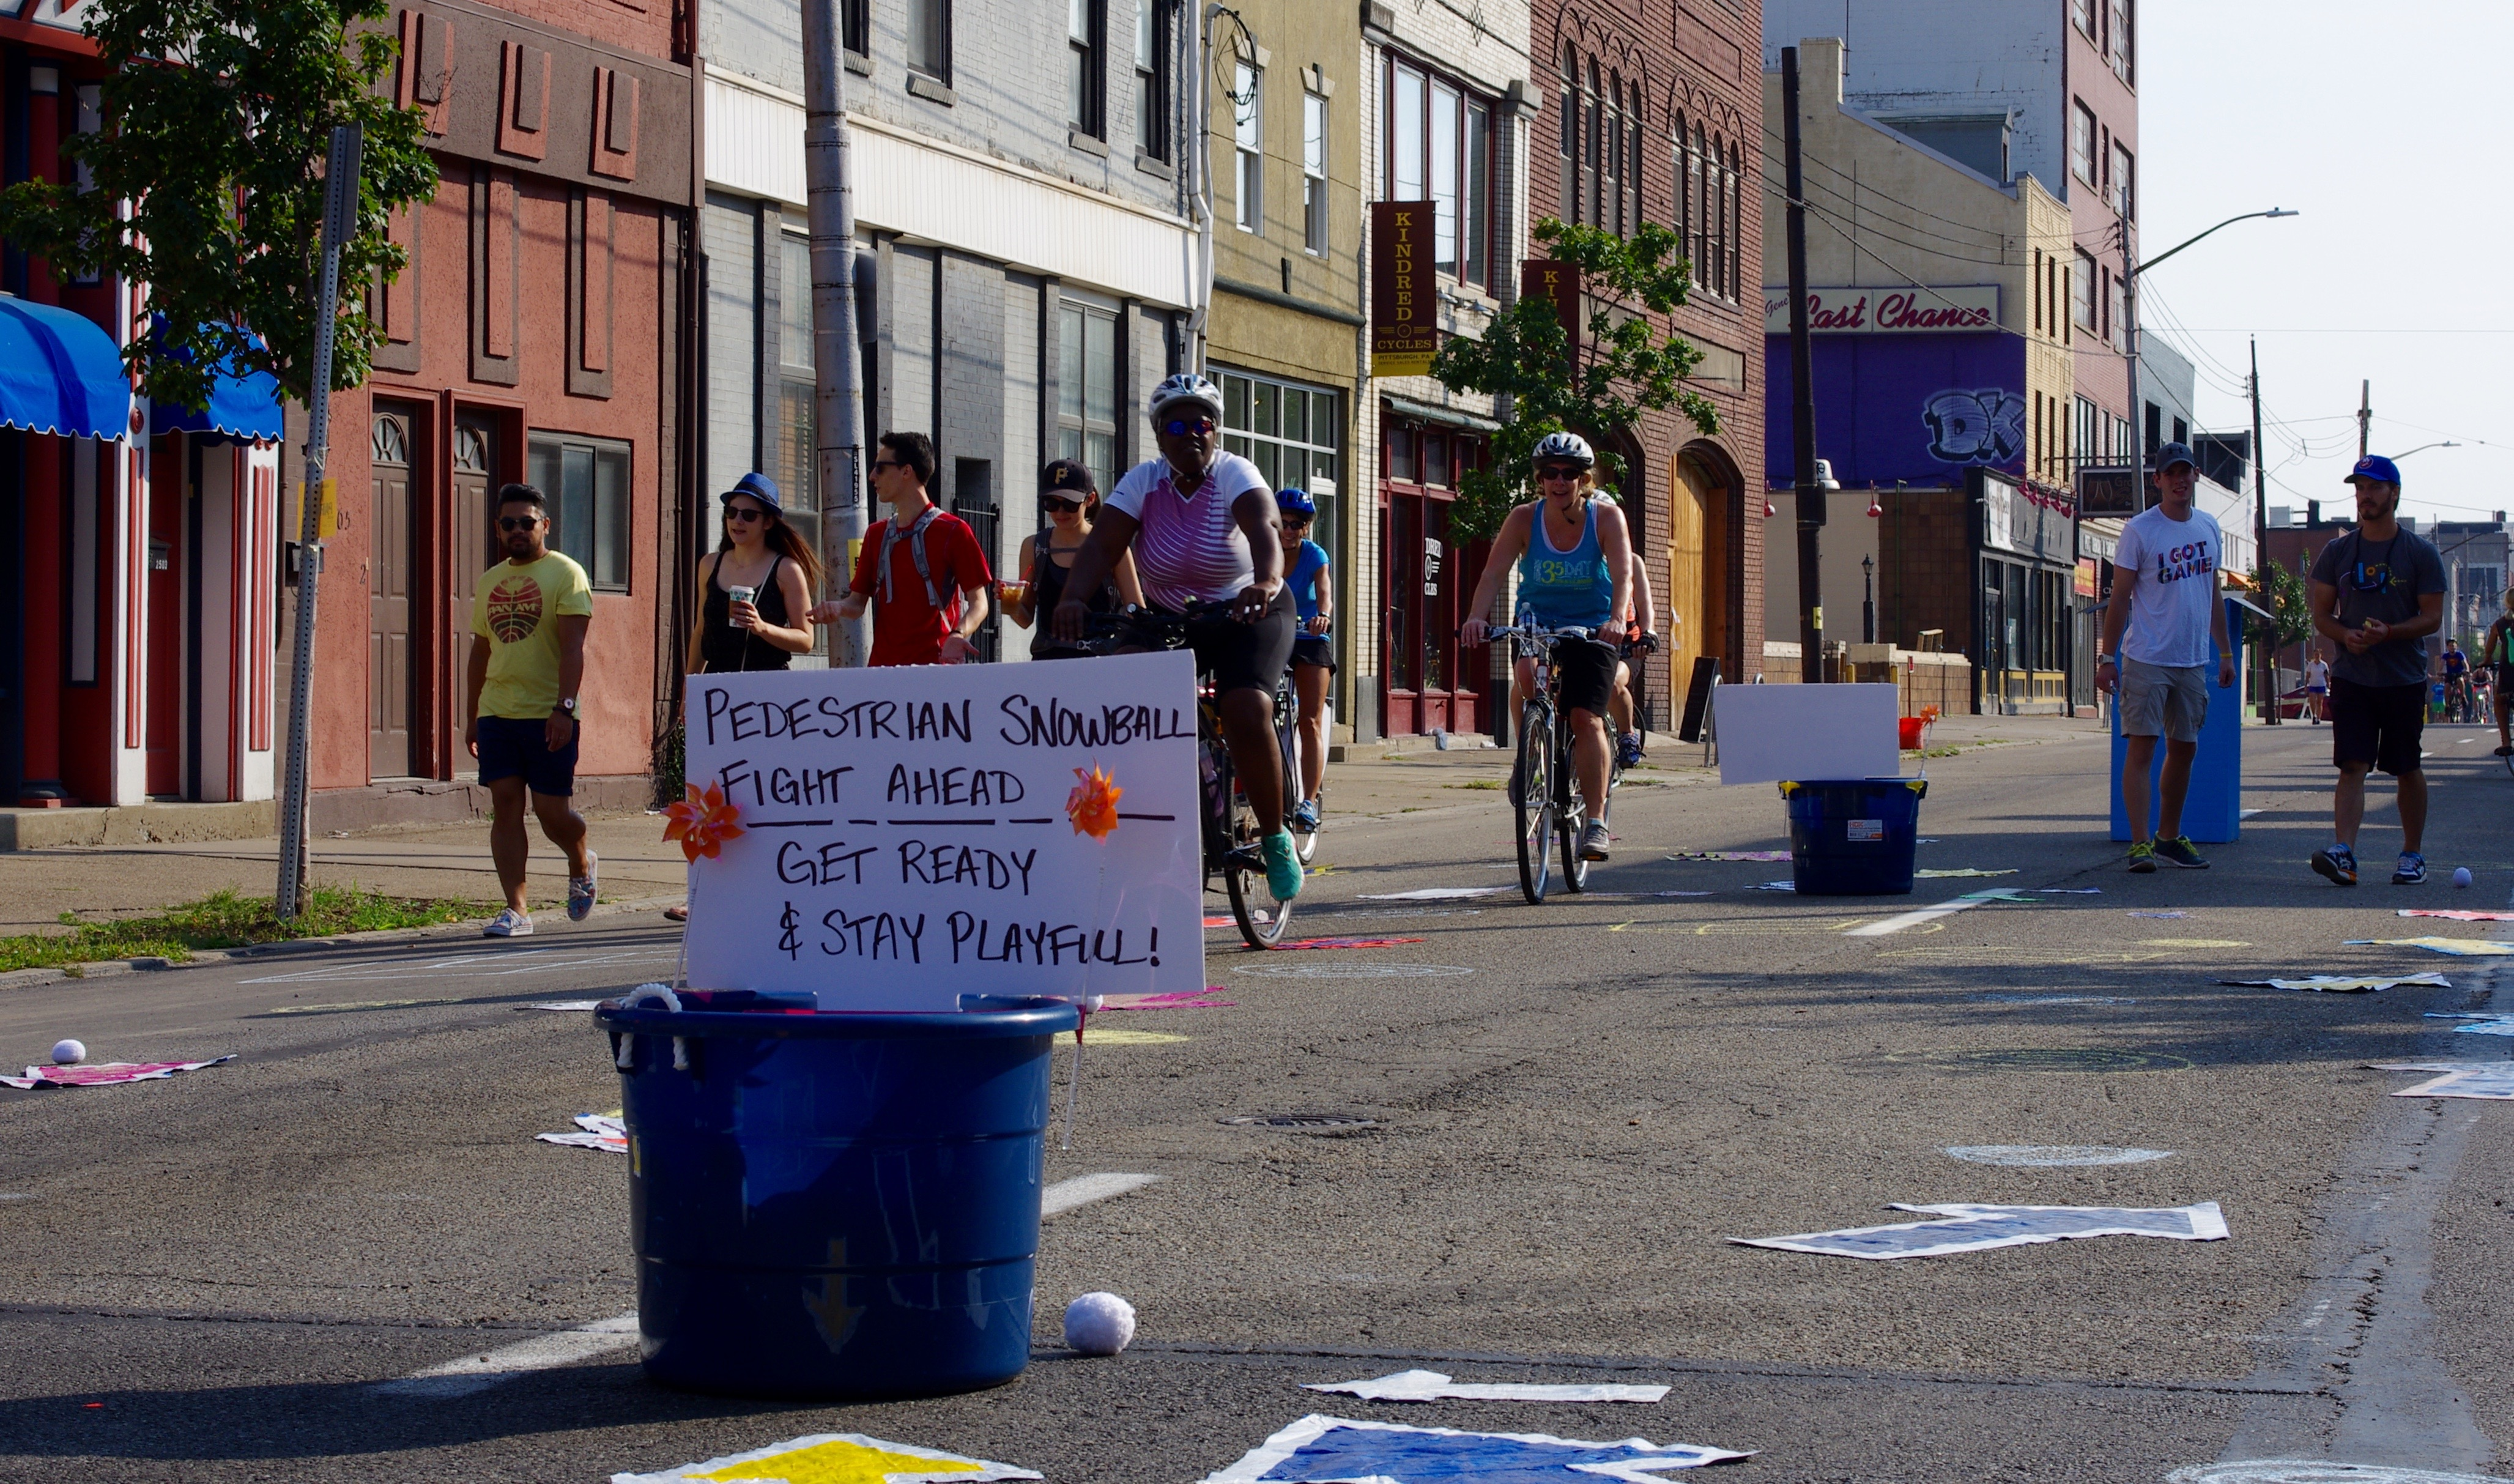 Games and activities were staged throughout the Open Streets route.